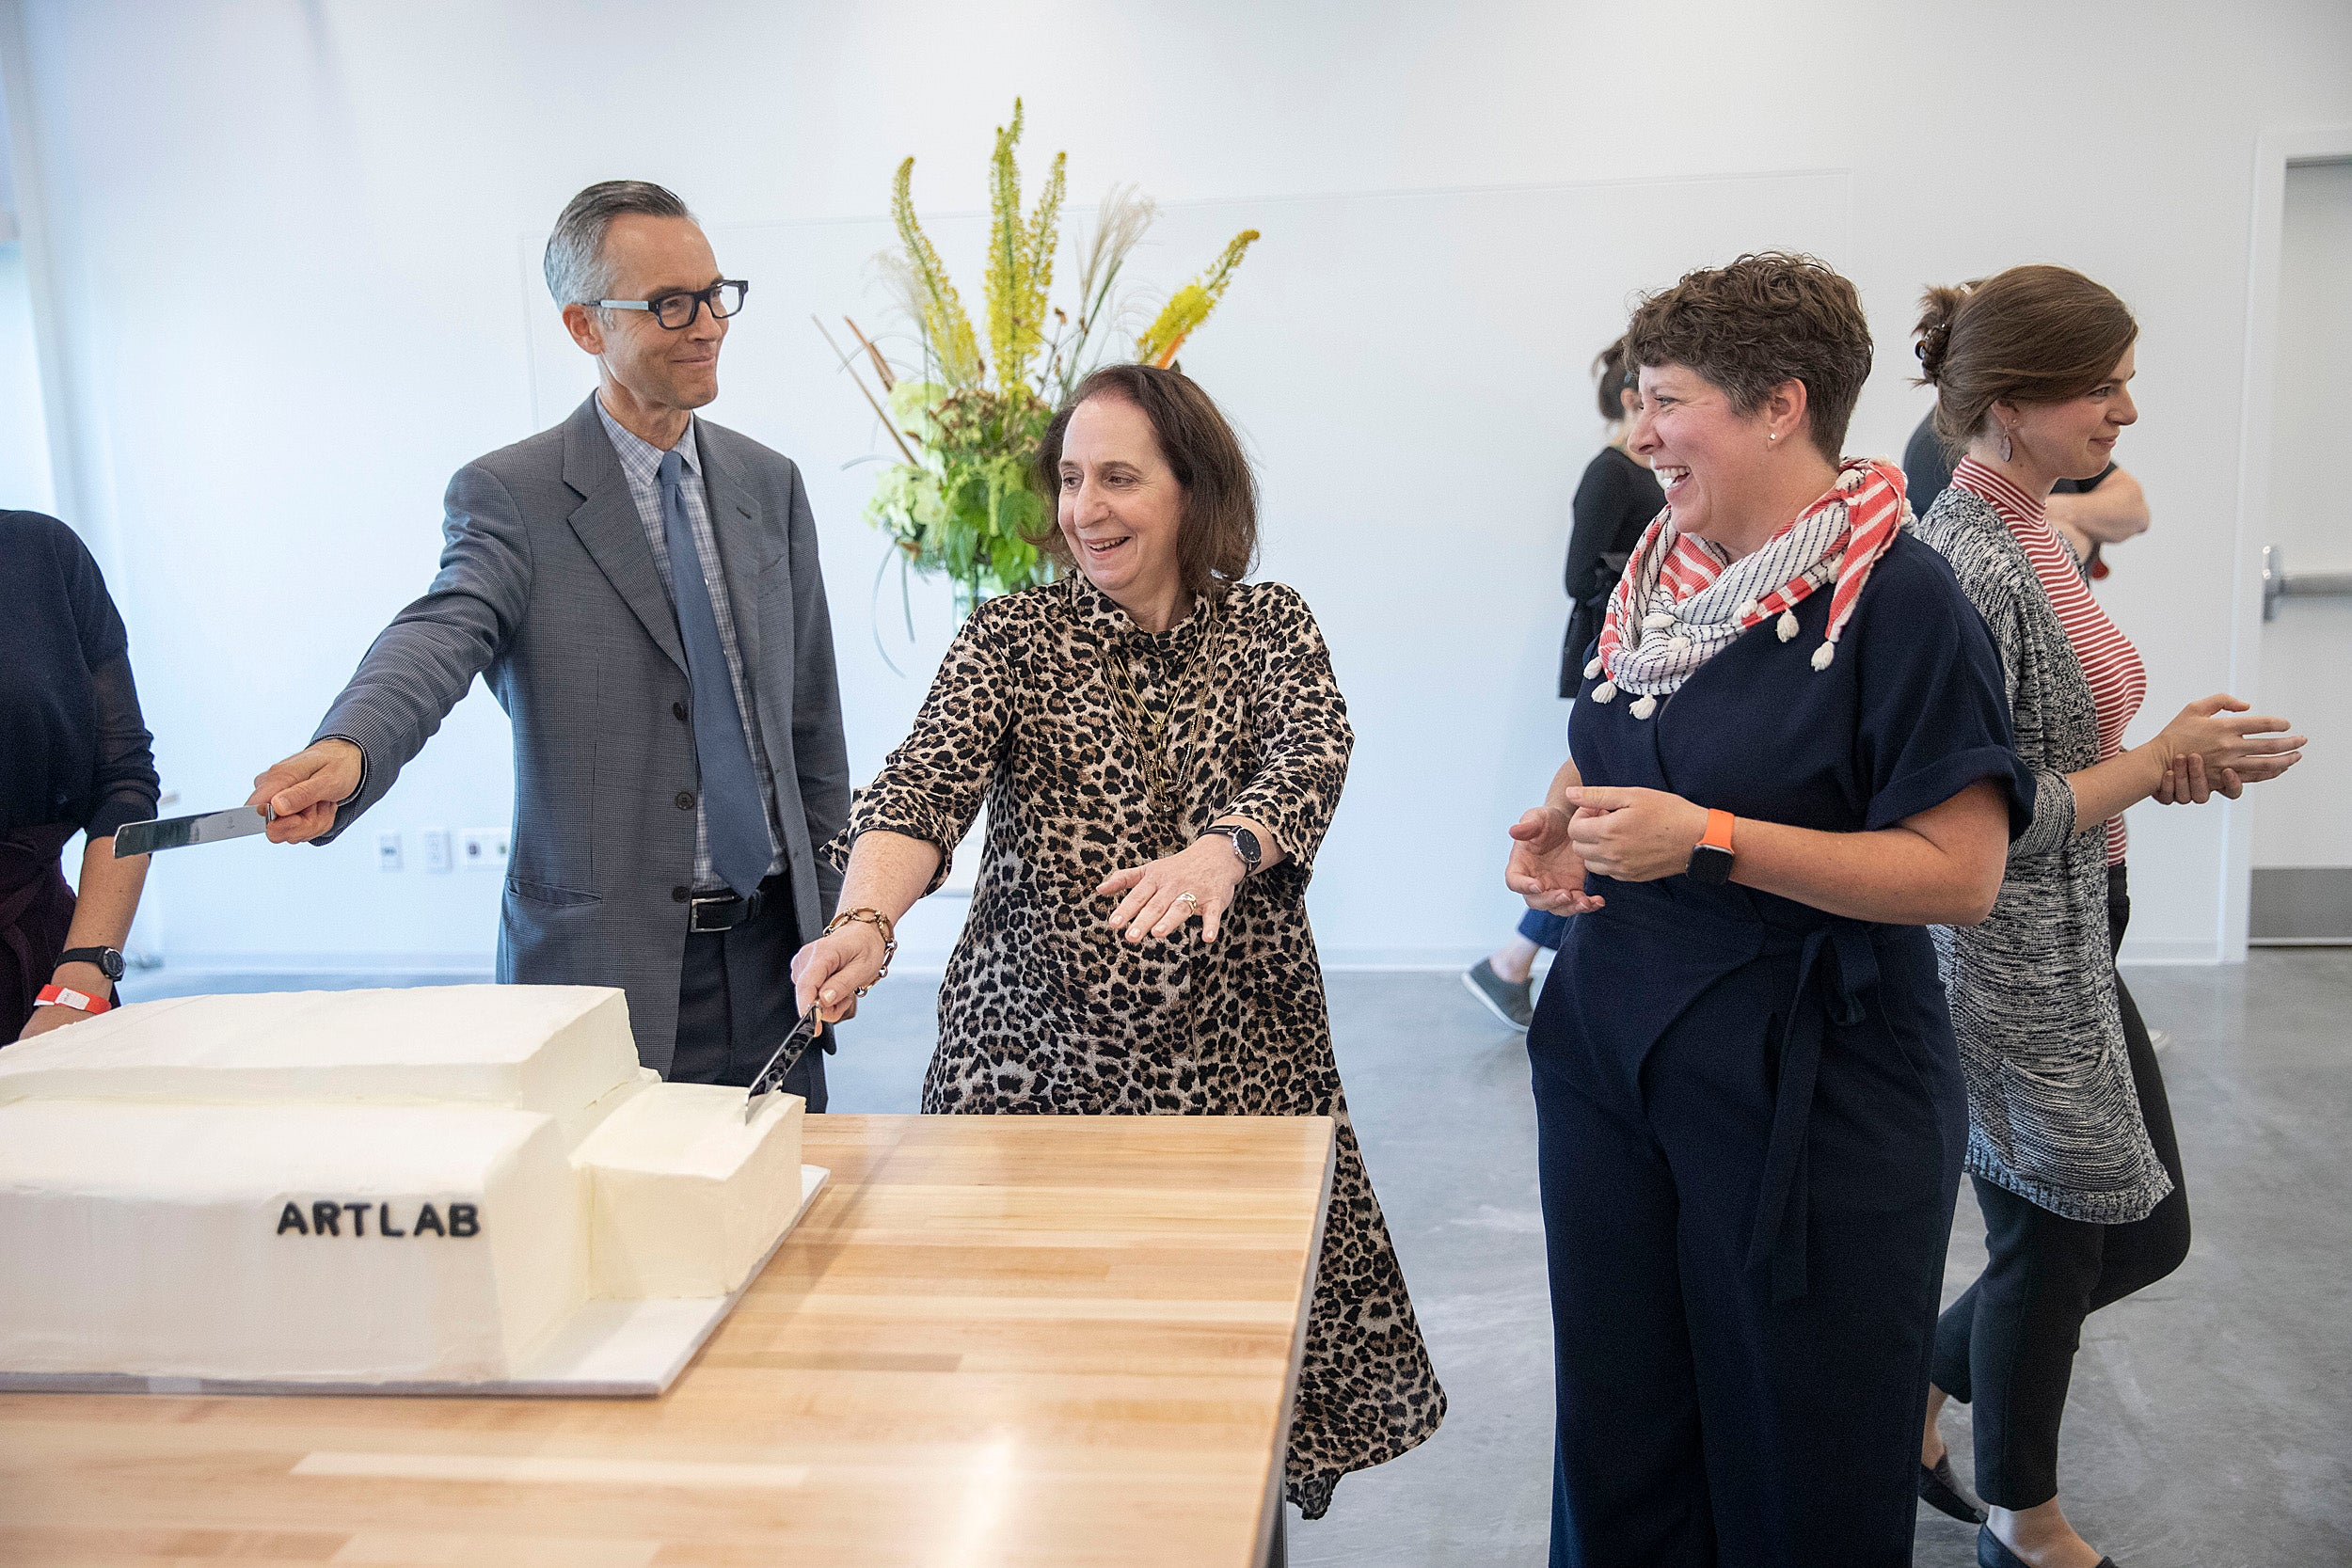 Cake cutting at the ArtLab